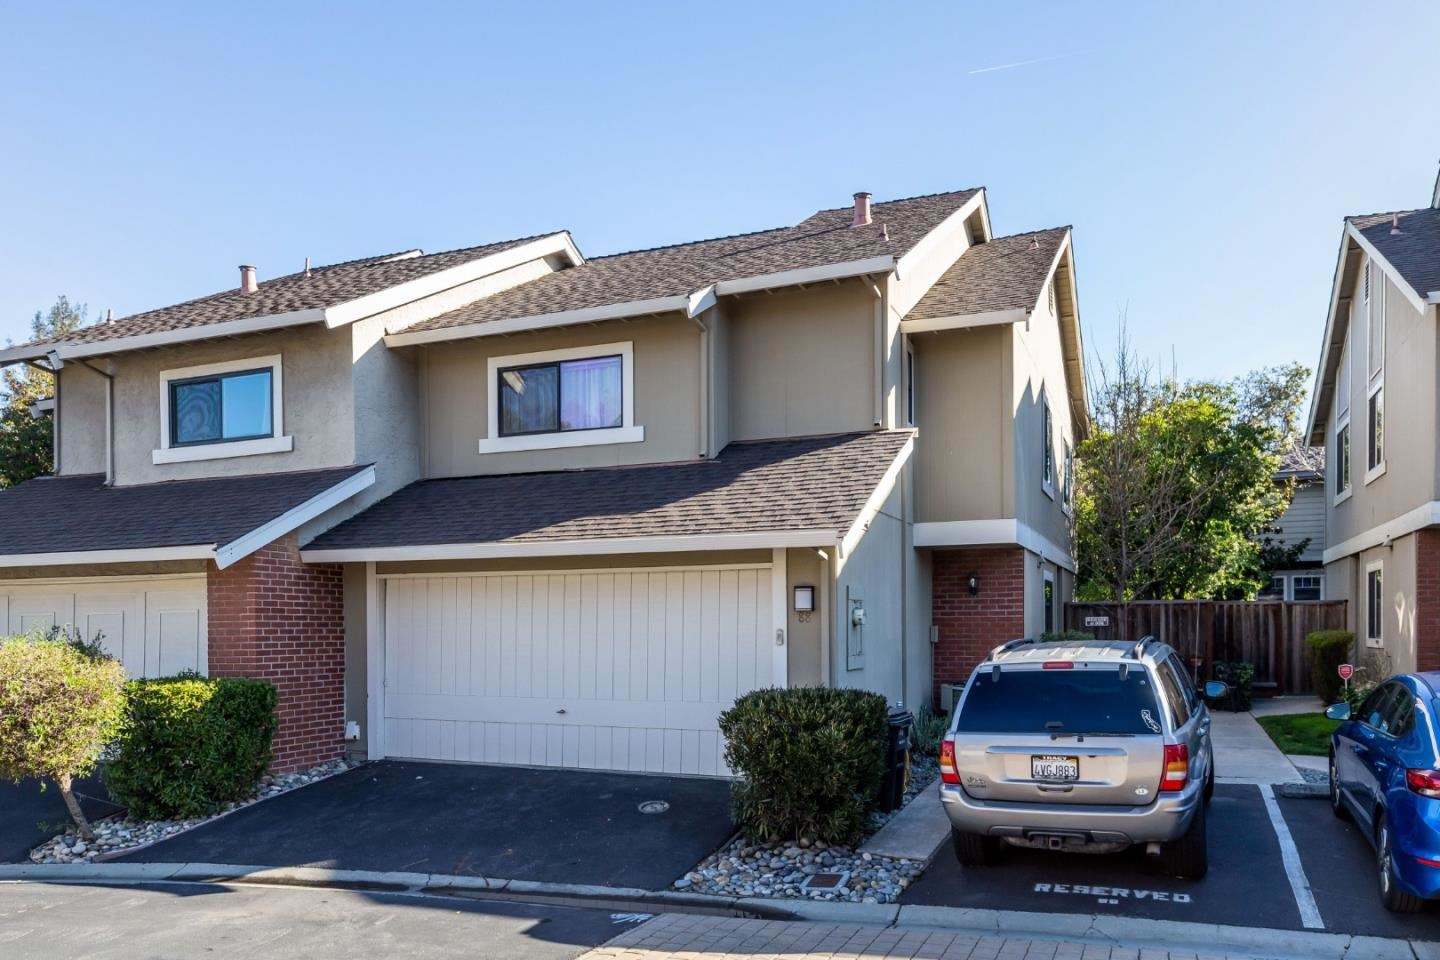 Photo for 88 Shelley Avenue, CAMPBELL, CA 95008 (MLS # ML81840340)